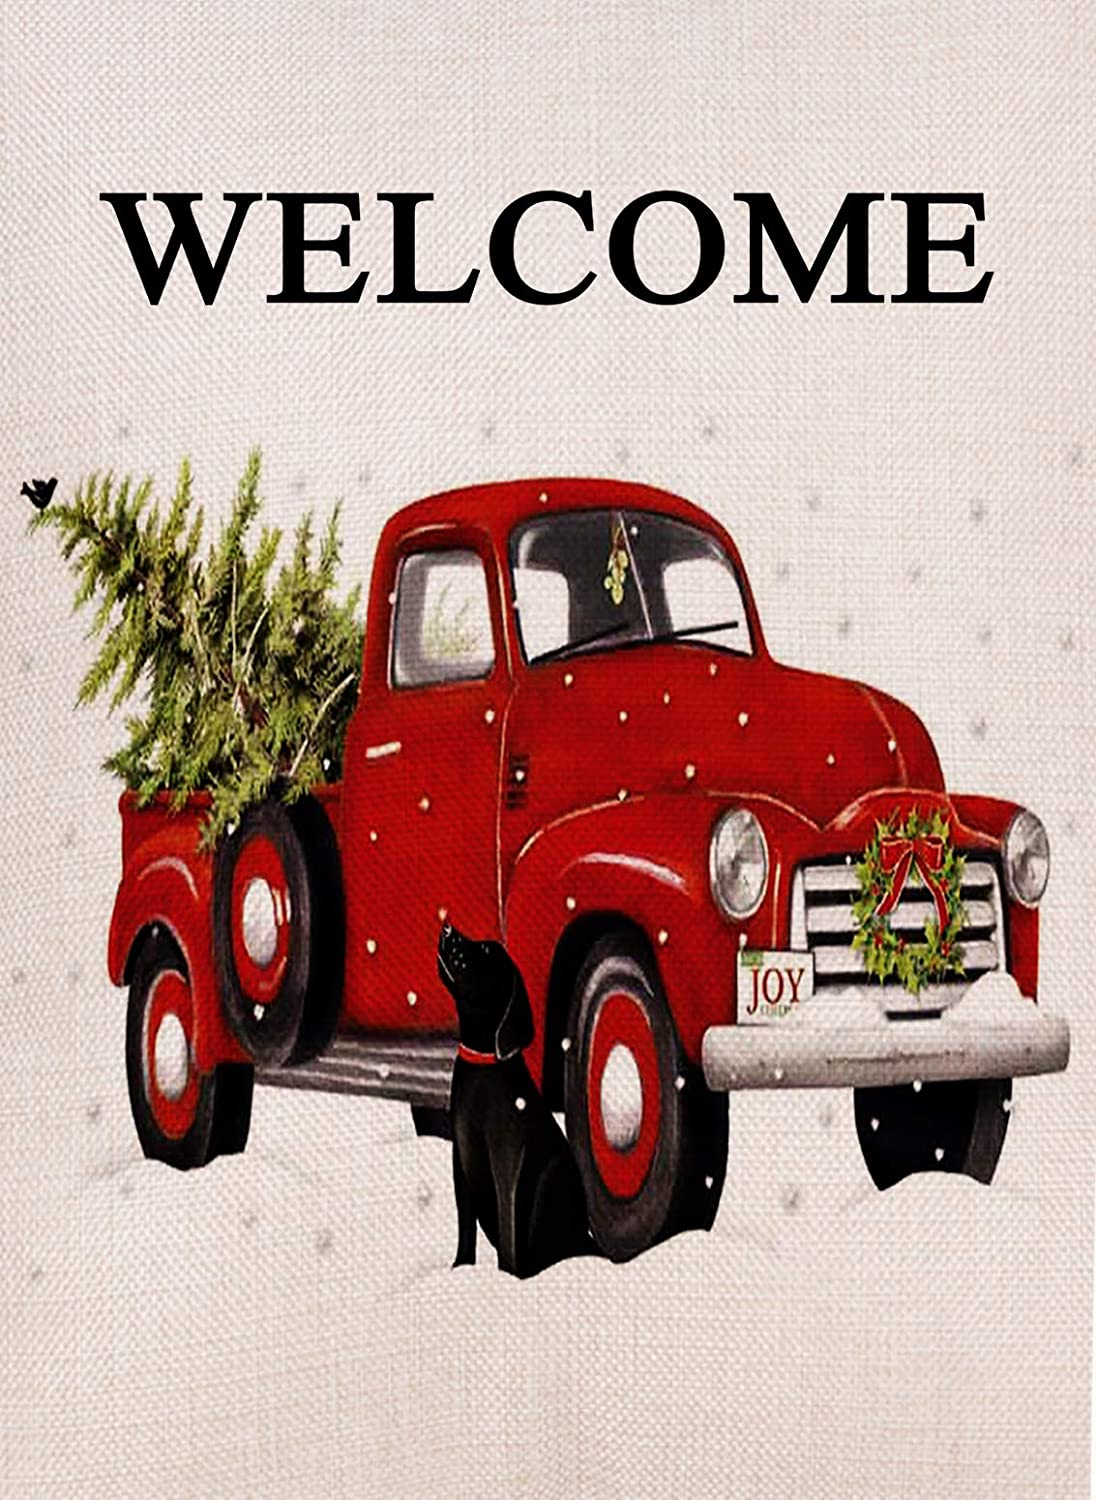 Dyrenson Home Decorative Christmas Garden Flag Welcome Dog, Xmas Quote House Yard Flag with Red Truck Joy, Black Lab Winter Garden Yard Decorations, Rustic Seasonal Outdoor Flag 12 x 18 for Holiday